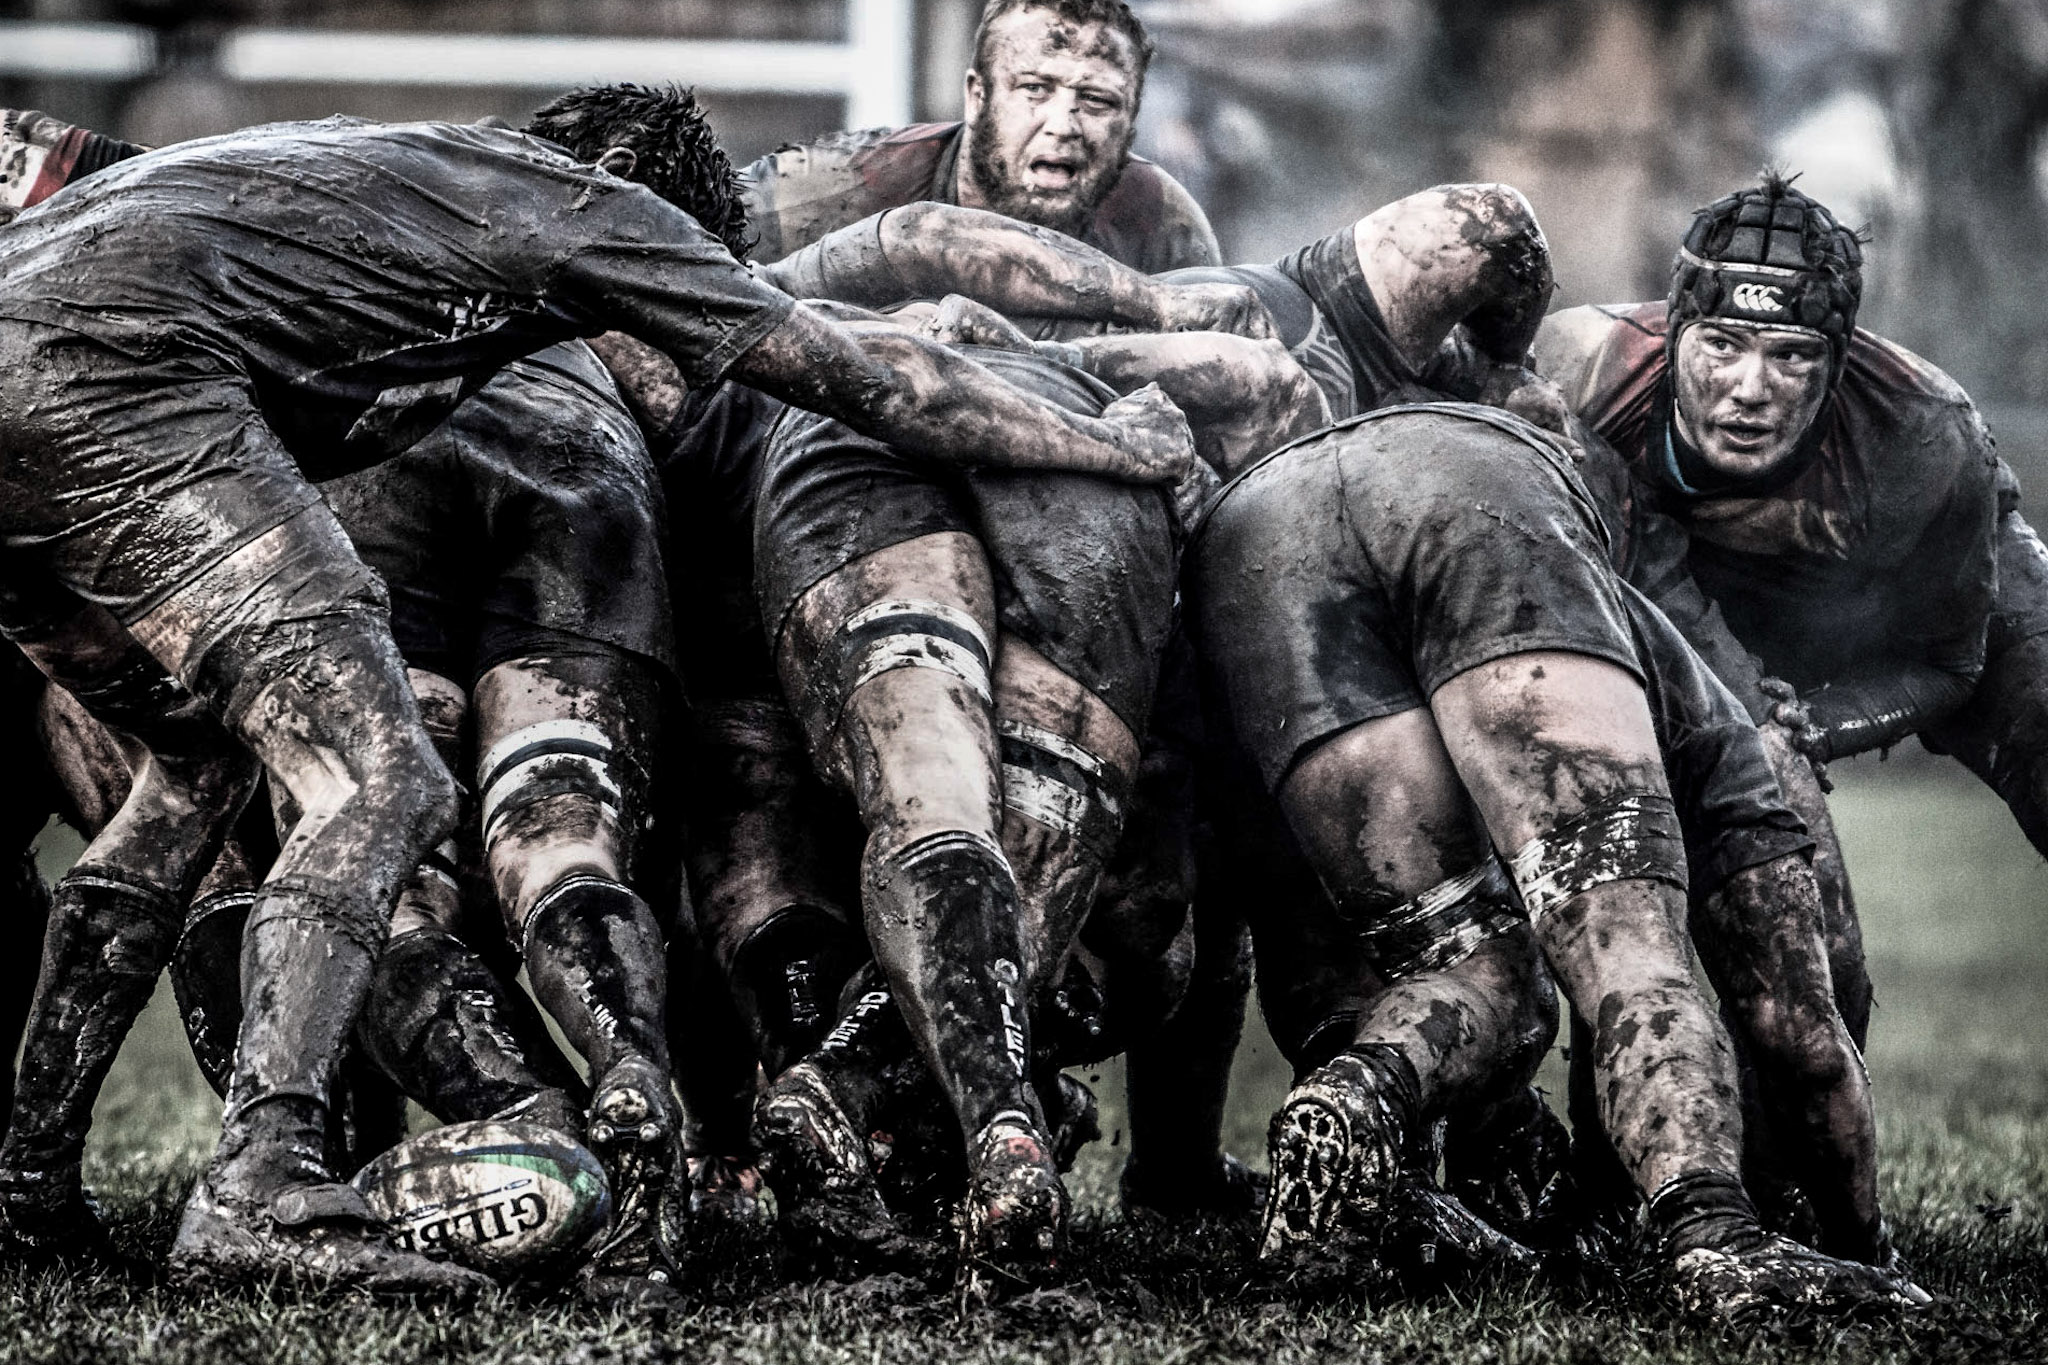 Photo: The Scrum by ickledot